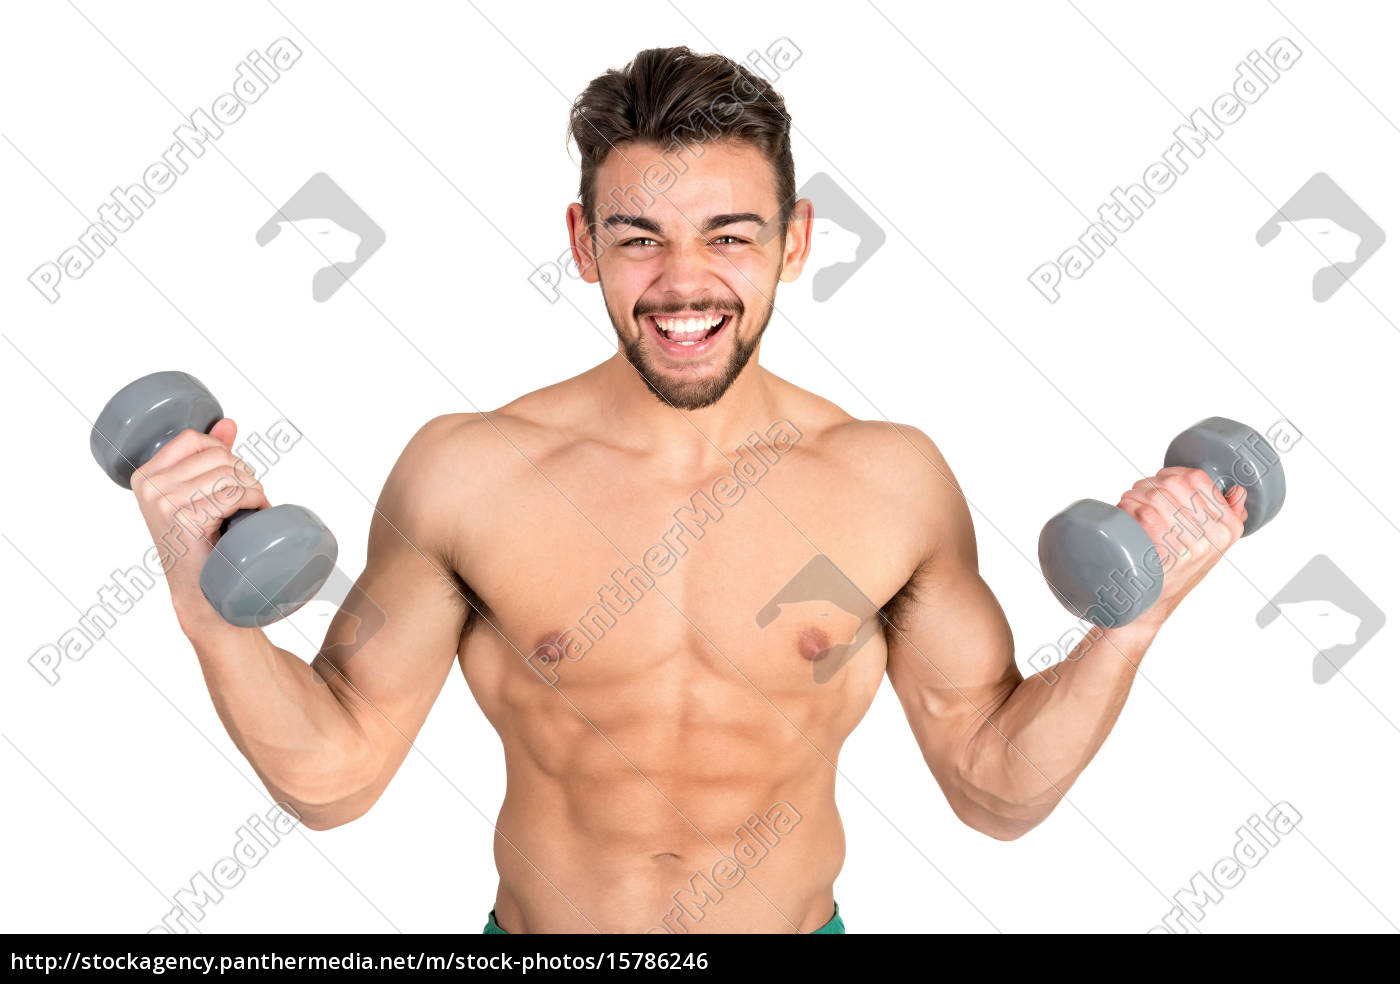 exercise - 15786246